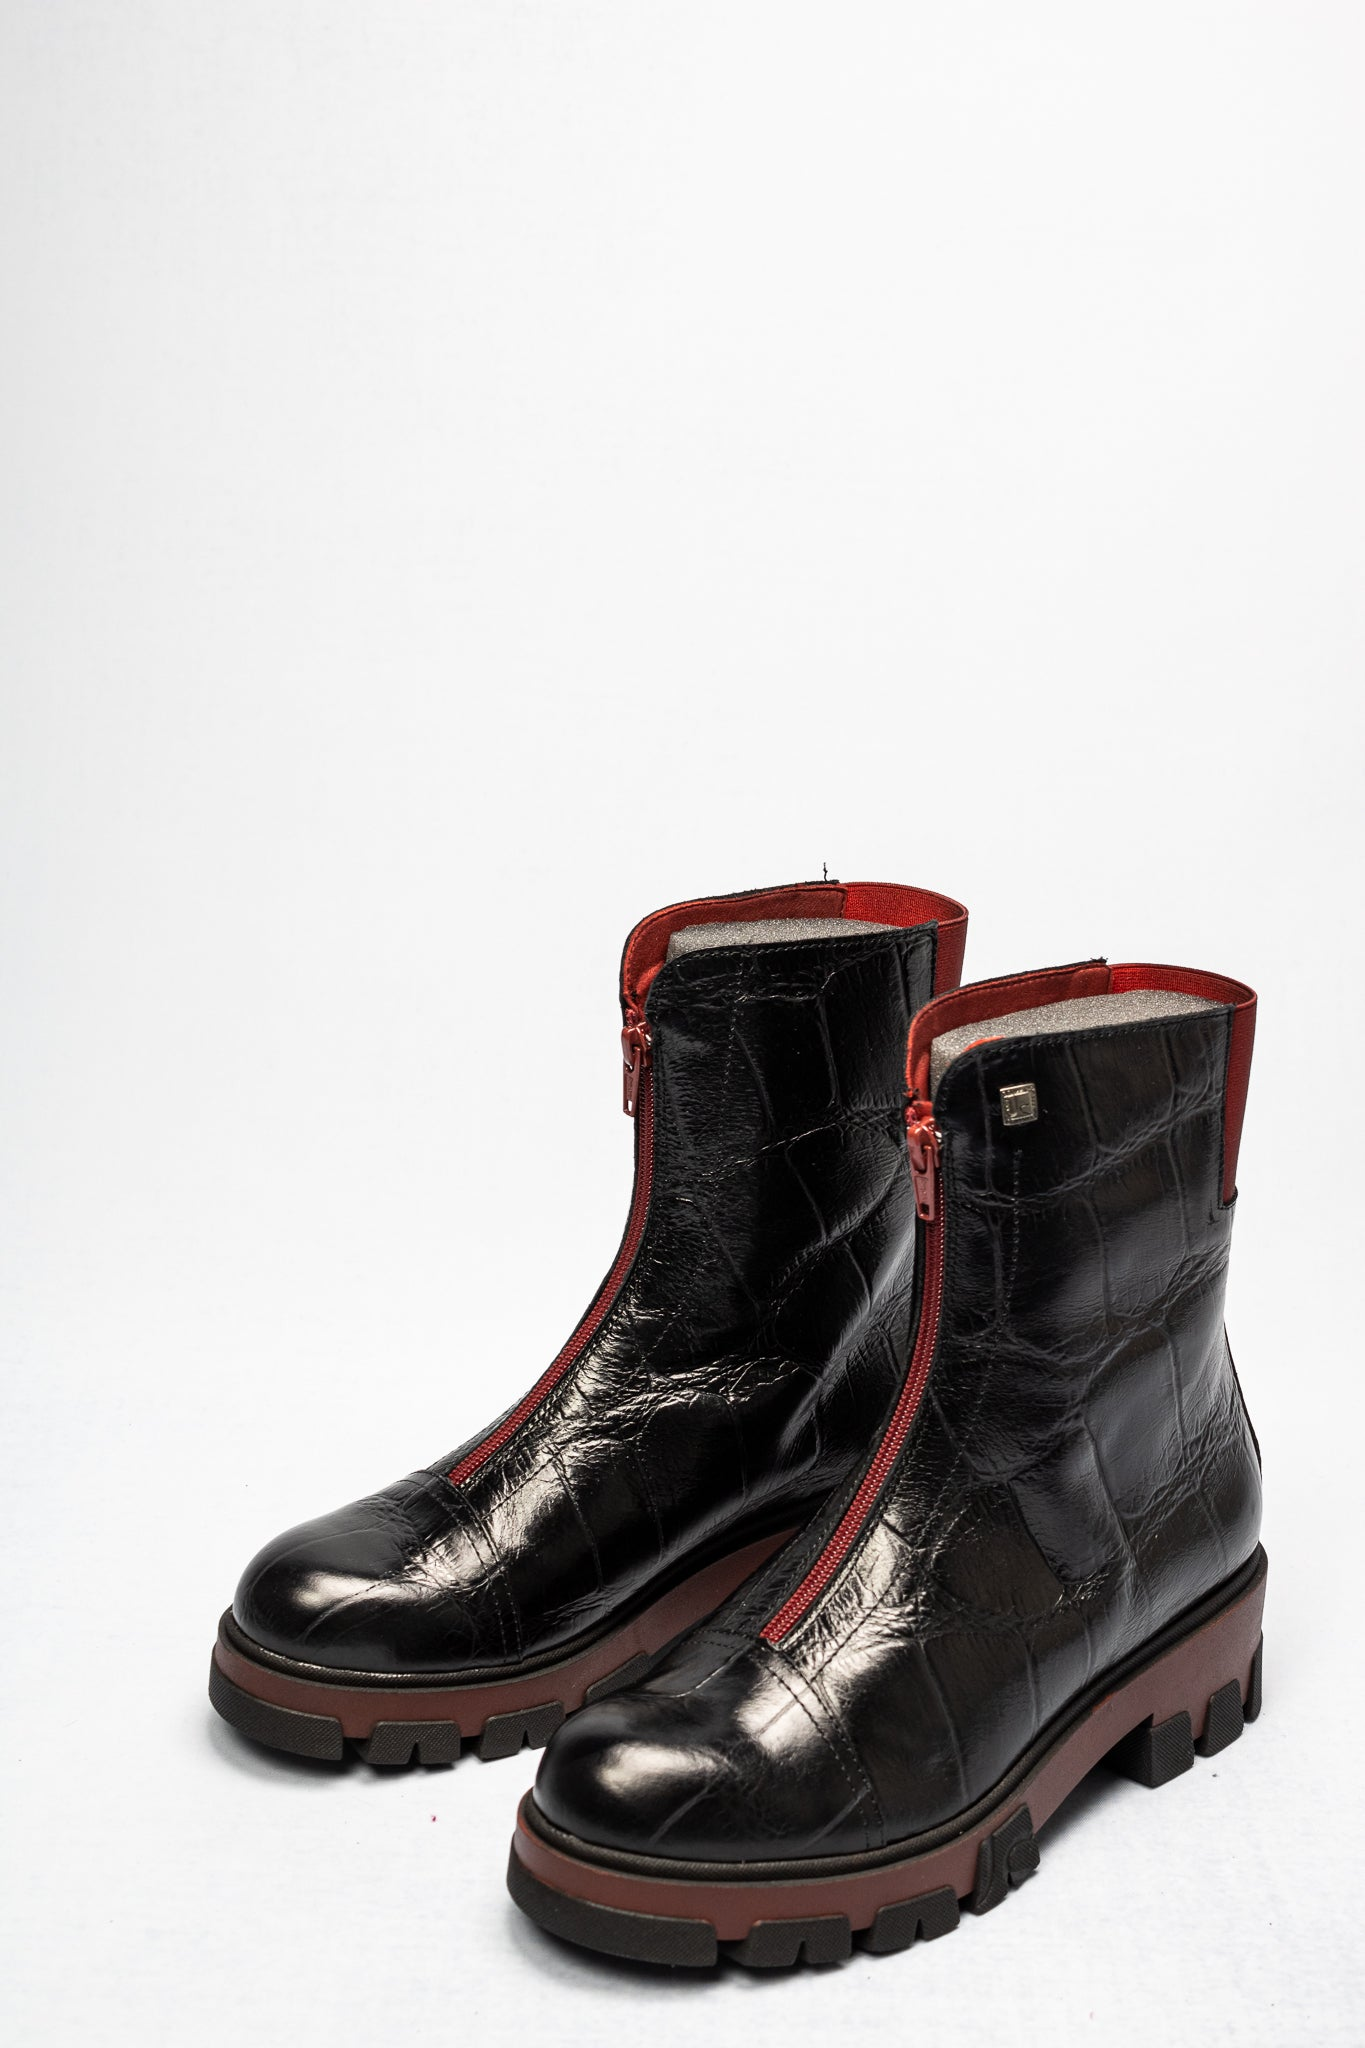 3009-K Jose Saenz Black & Red Ankle Boot for sale online ireland